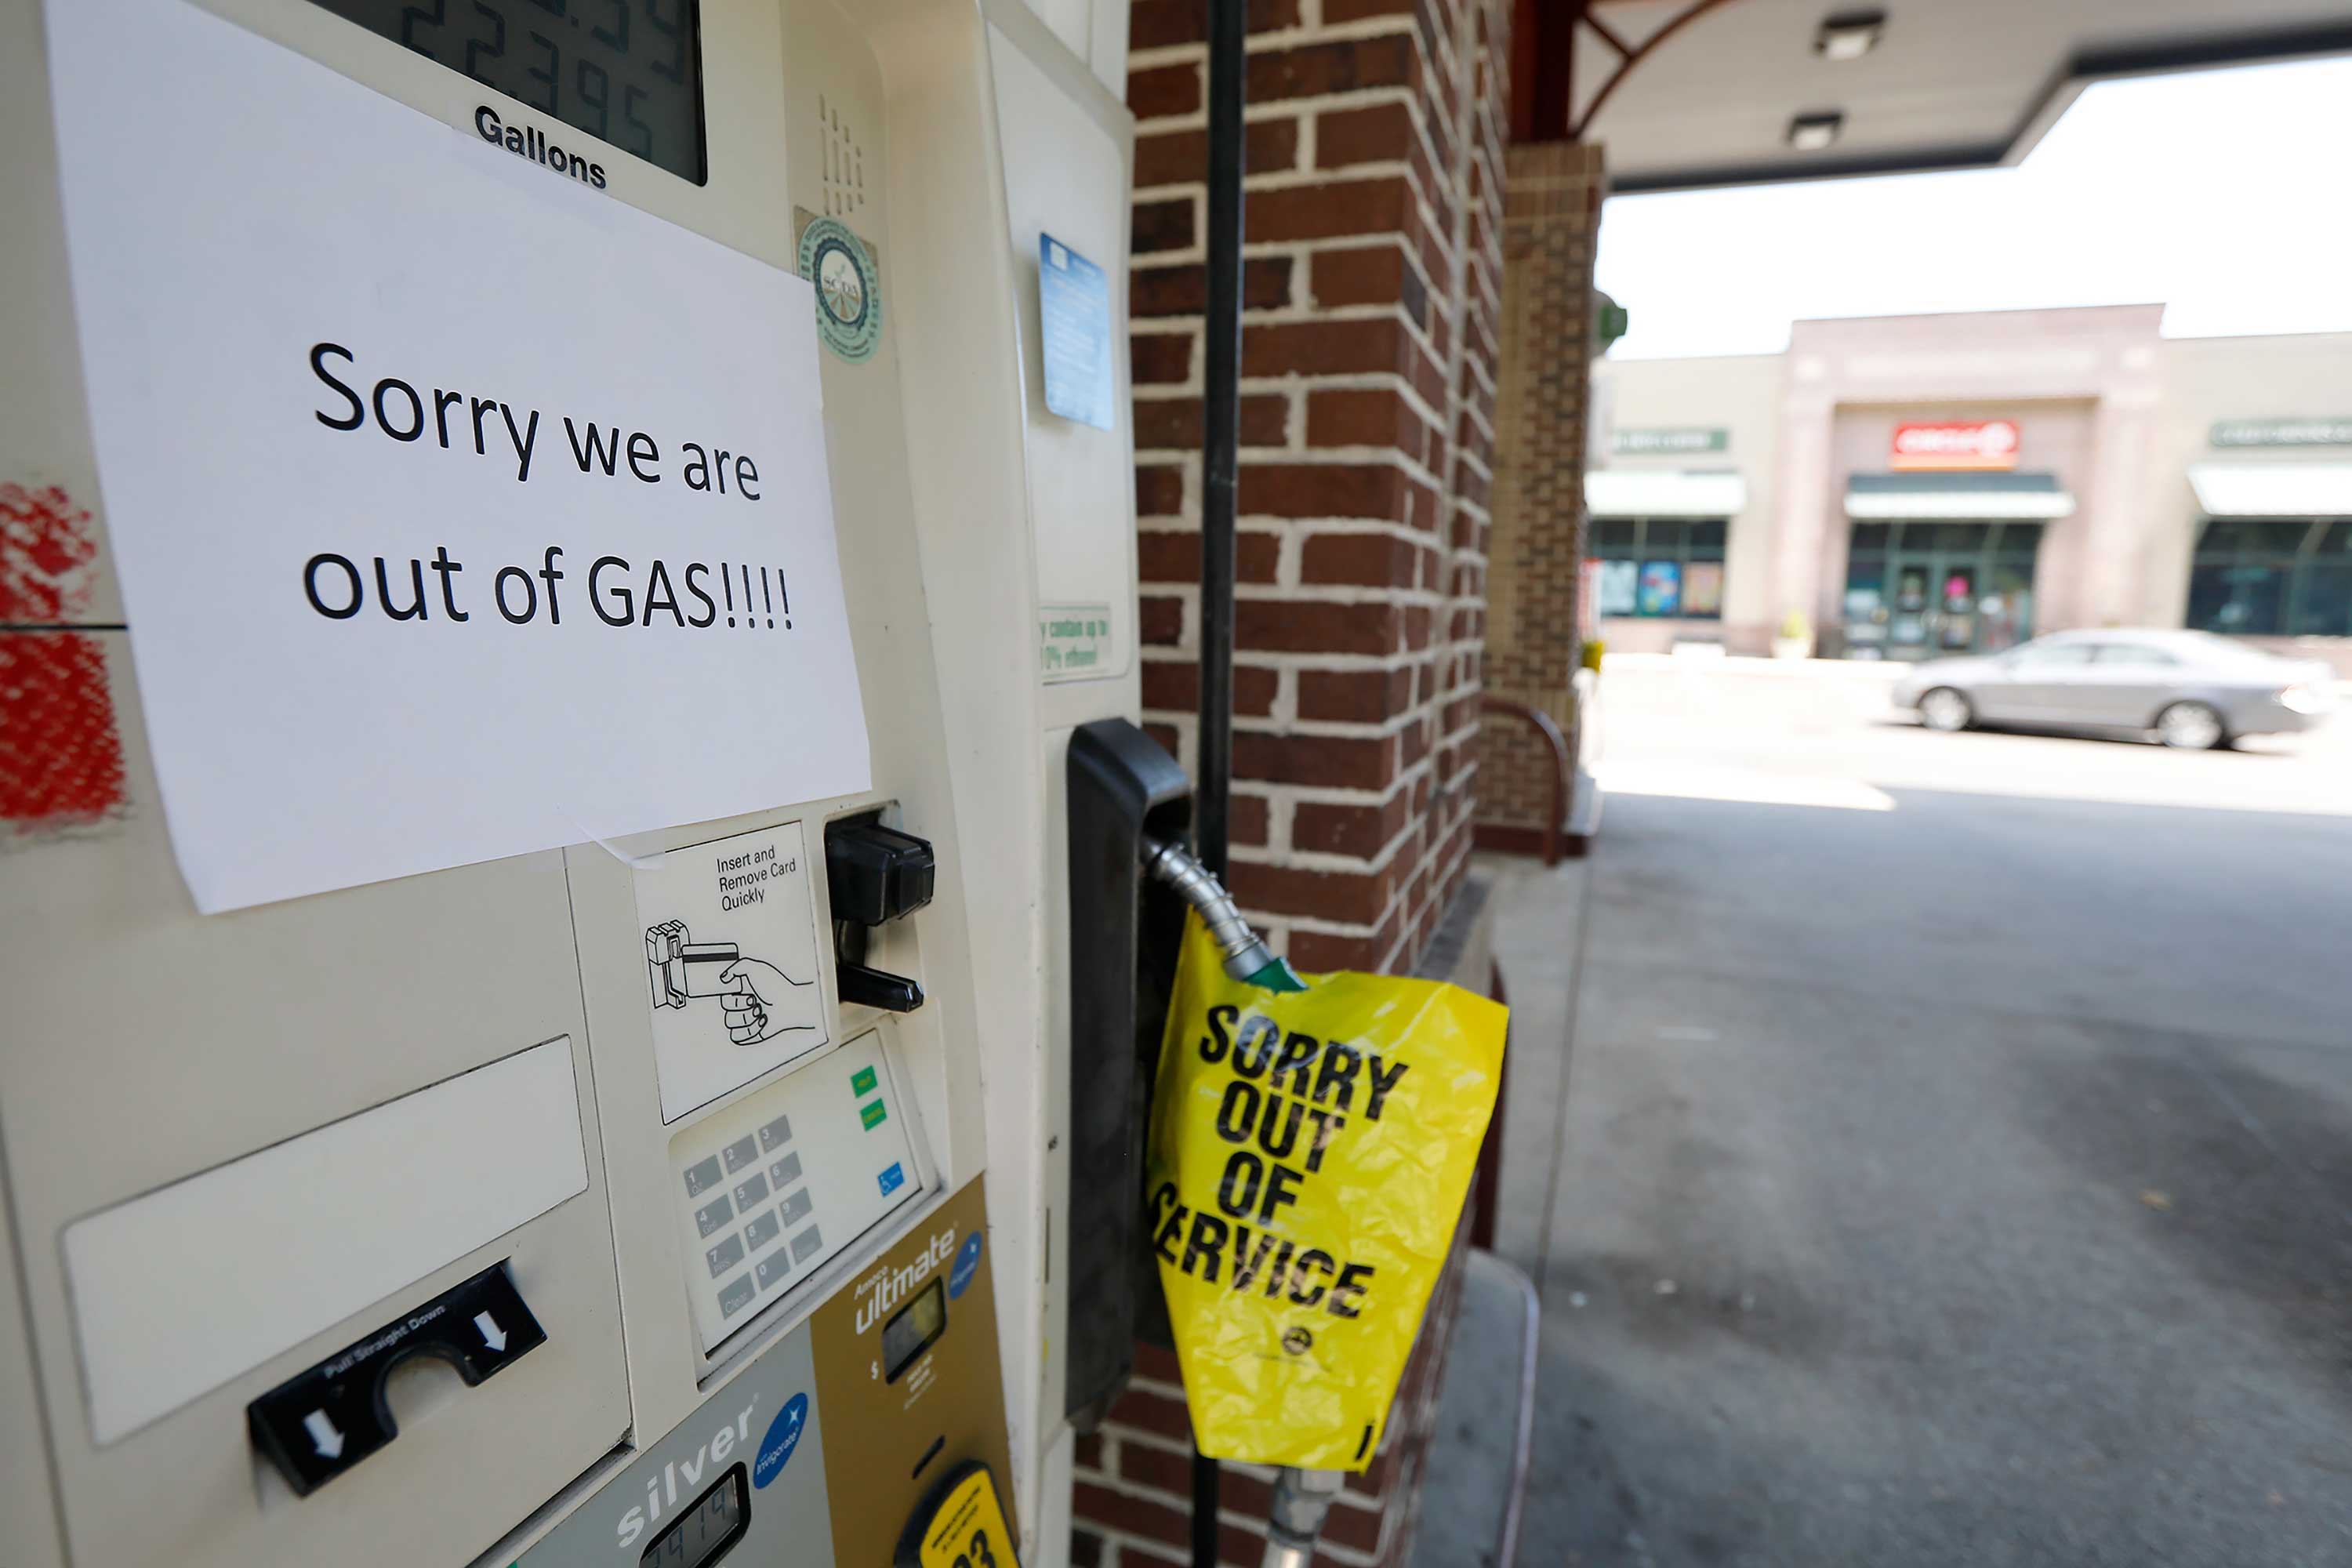 <div class='meta'><div class='origin-logo' data-origin='none'></div><span class='caption-text' data-credit='Mic Smith/AP Photo'>A gas station in Mt. Pleasant S.C. alerts motorist that it is out of gas due to the heavy demand caused by Hurricane Florence Tuesday, Sept. 11, 2018.</span></div>